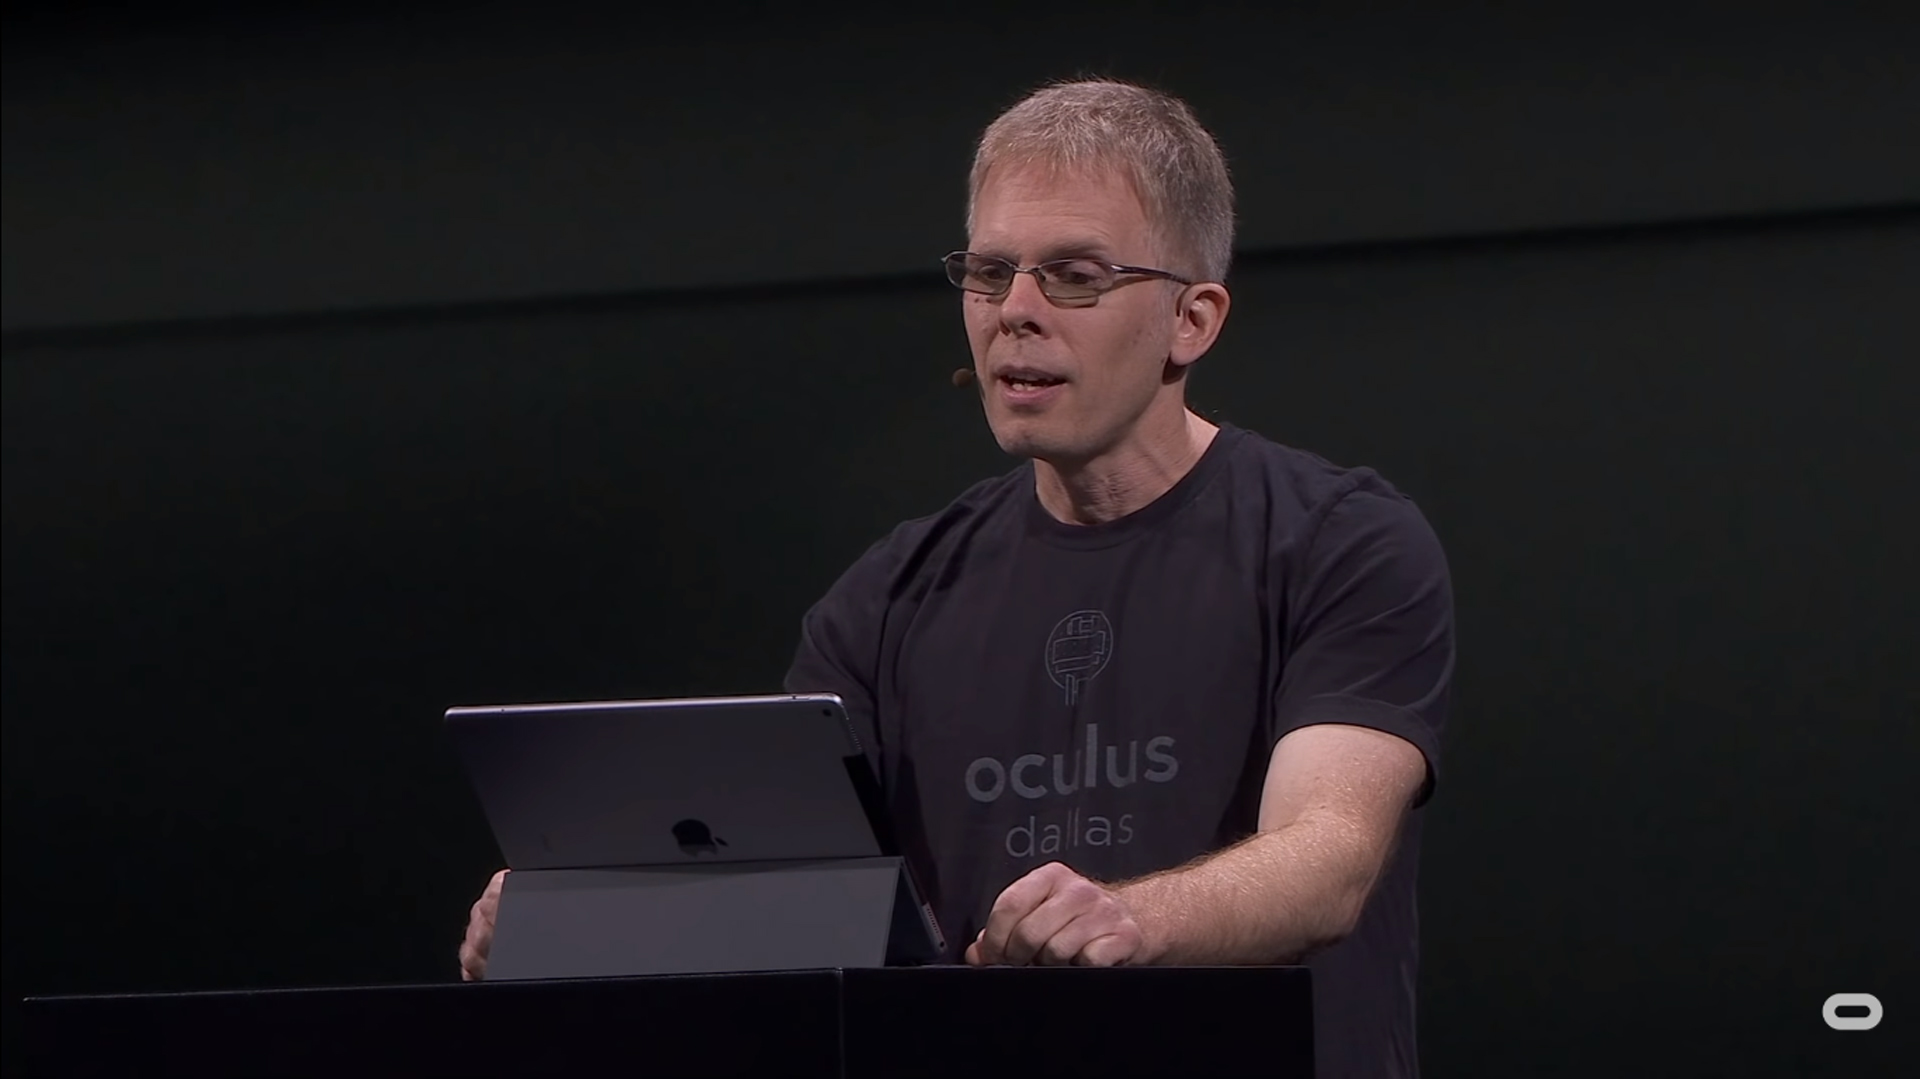 """Oculus CTO Wants Android Apps on Quest, But is """"not winning"""" the Debate Within Facebook"""